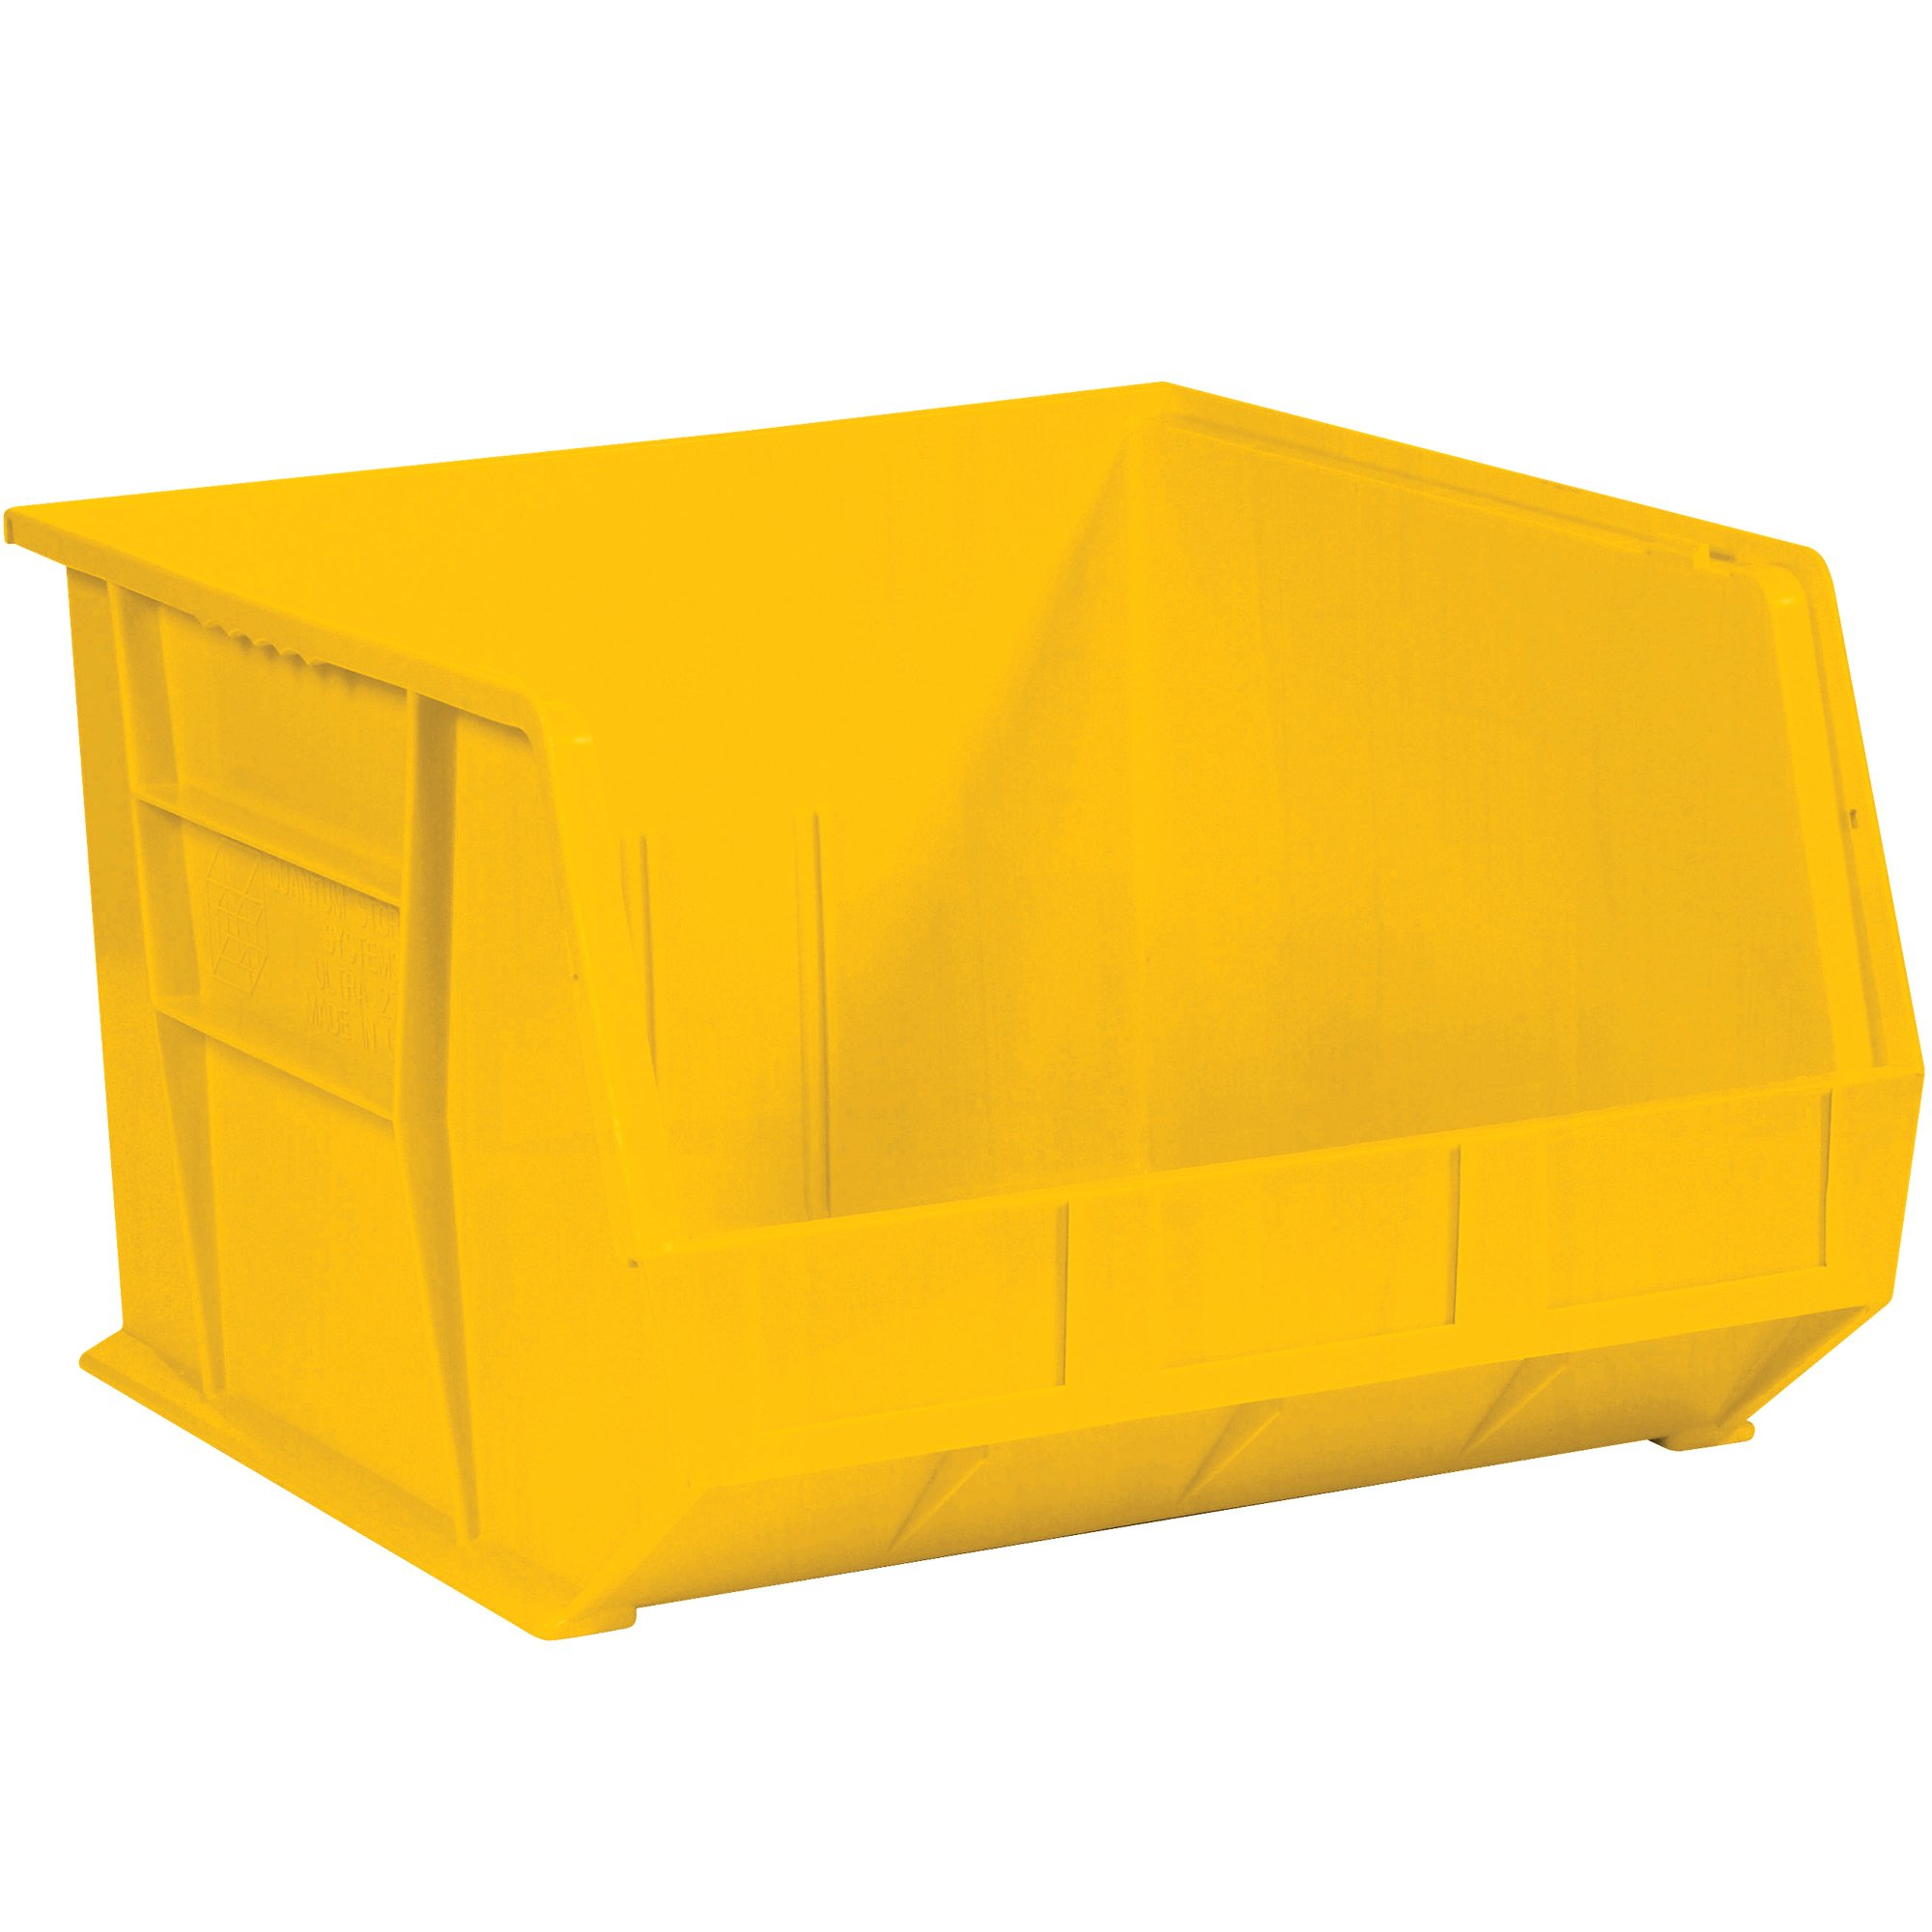 "Aviditi BINP1816Y Plastic Stack and Hang Bin Box, 18"" Length x 16-1/2"" Width x 11"" Height, Yellow (Case of 3)"